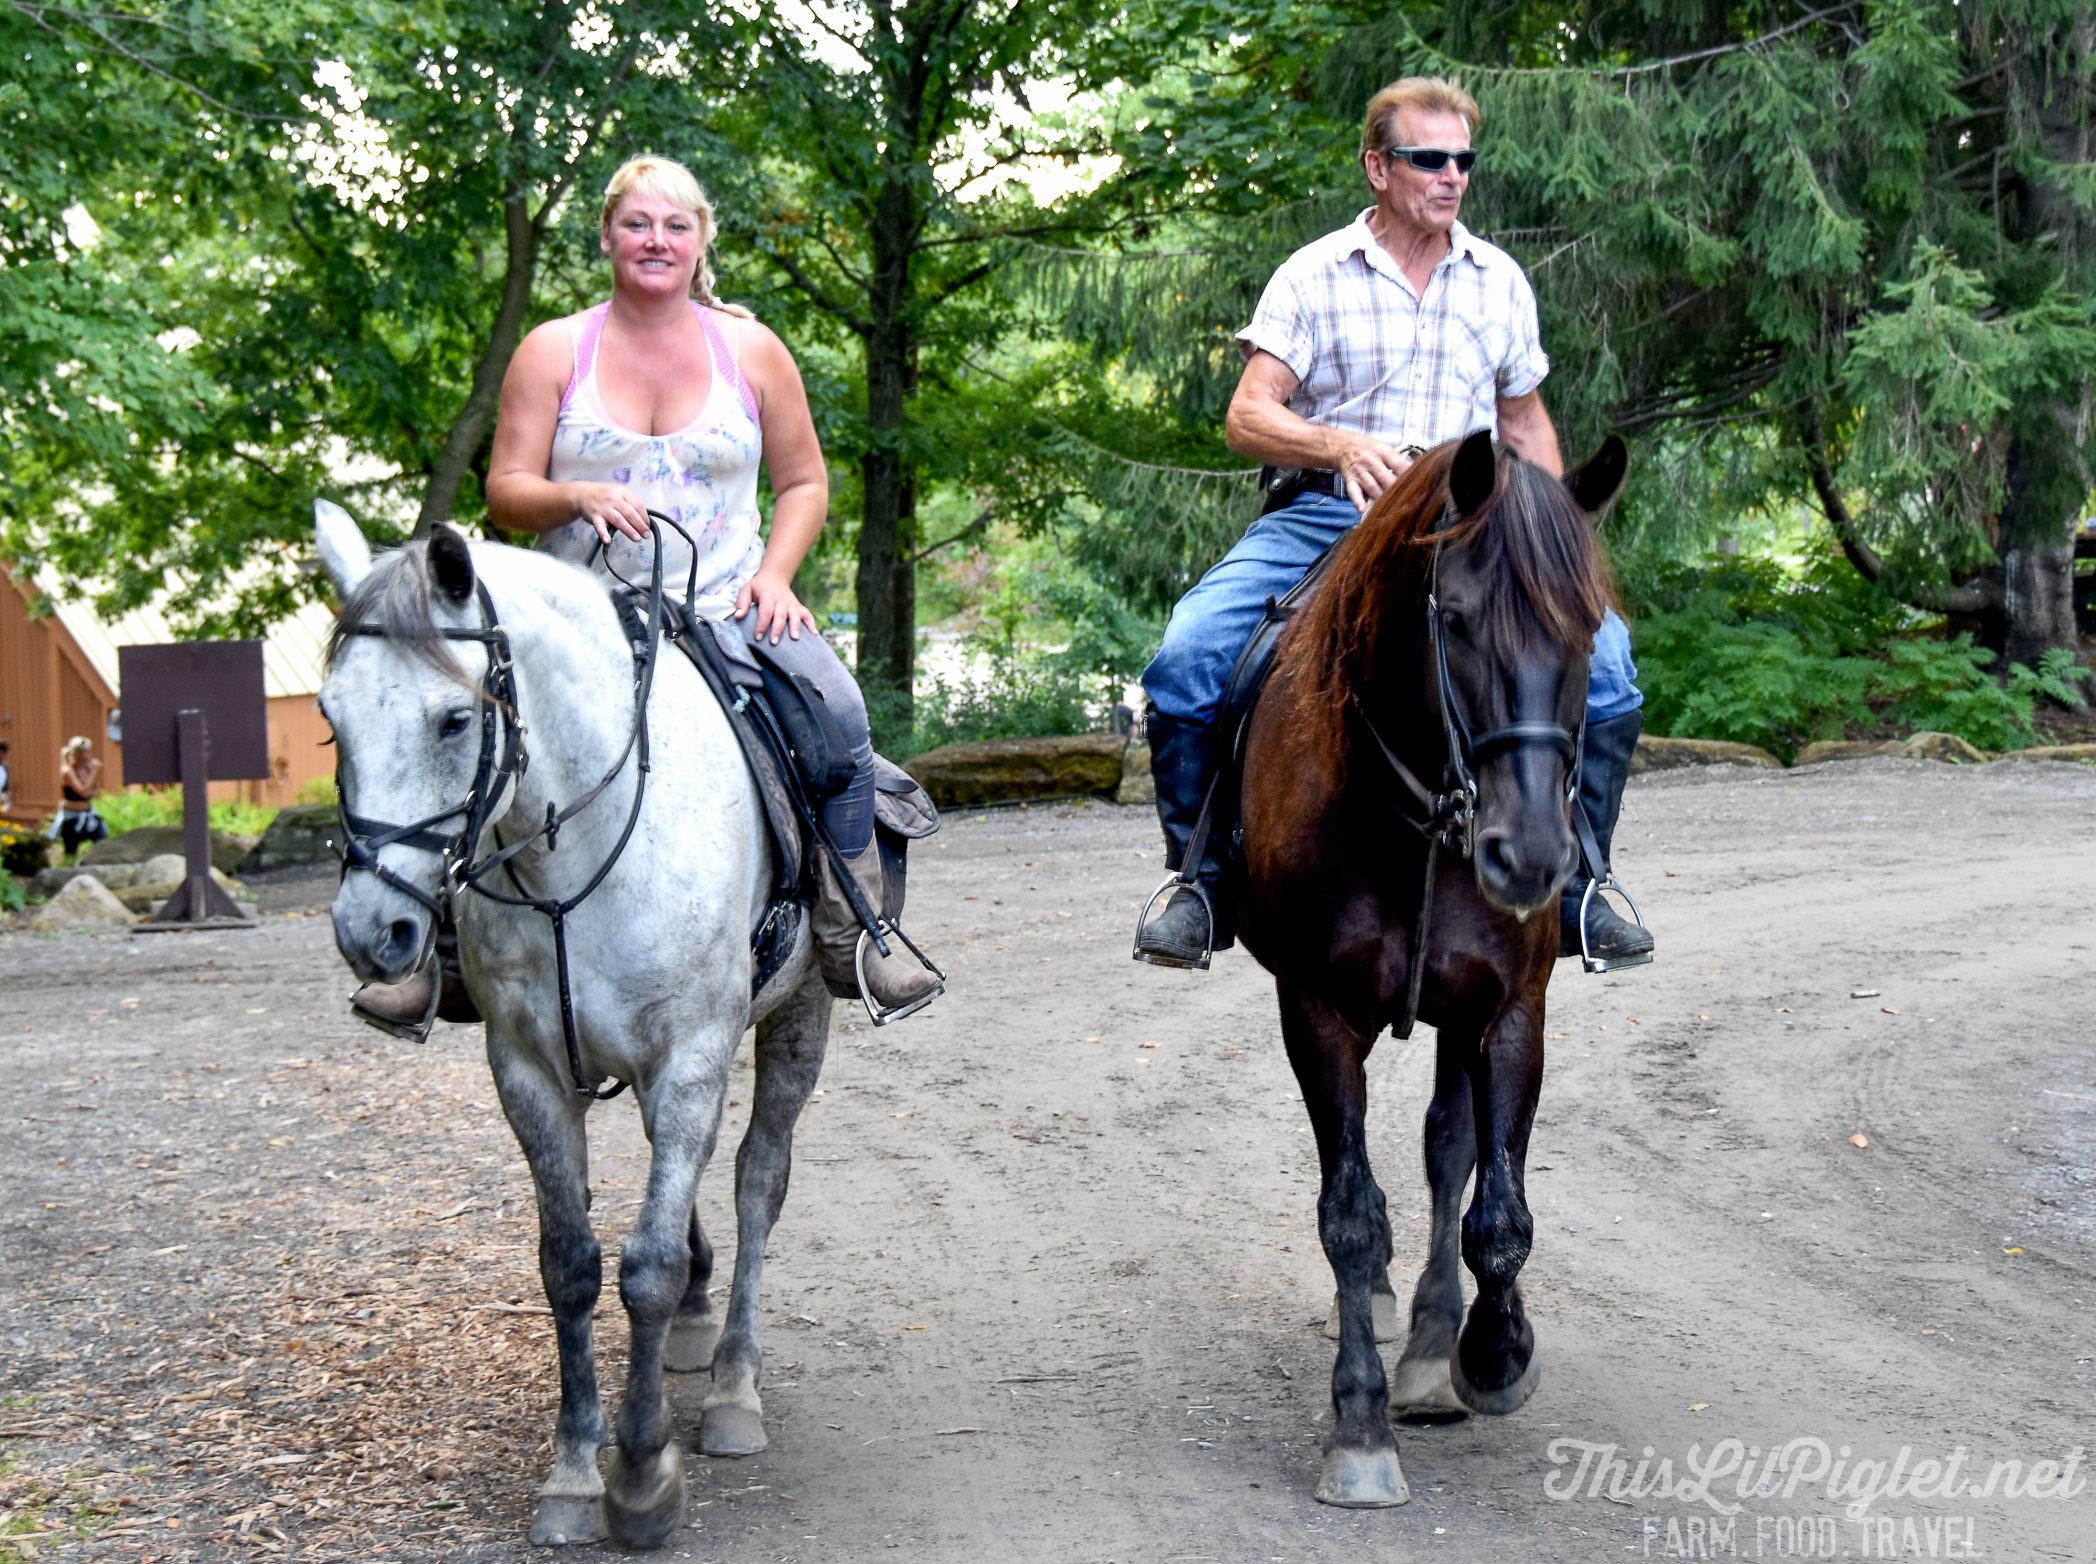 Quebec Farm to Table Discoveries in the Bois de Belle-Rivière Regional Park: Things to Do - Horseback Riding // thislilpiglet.net